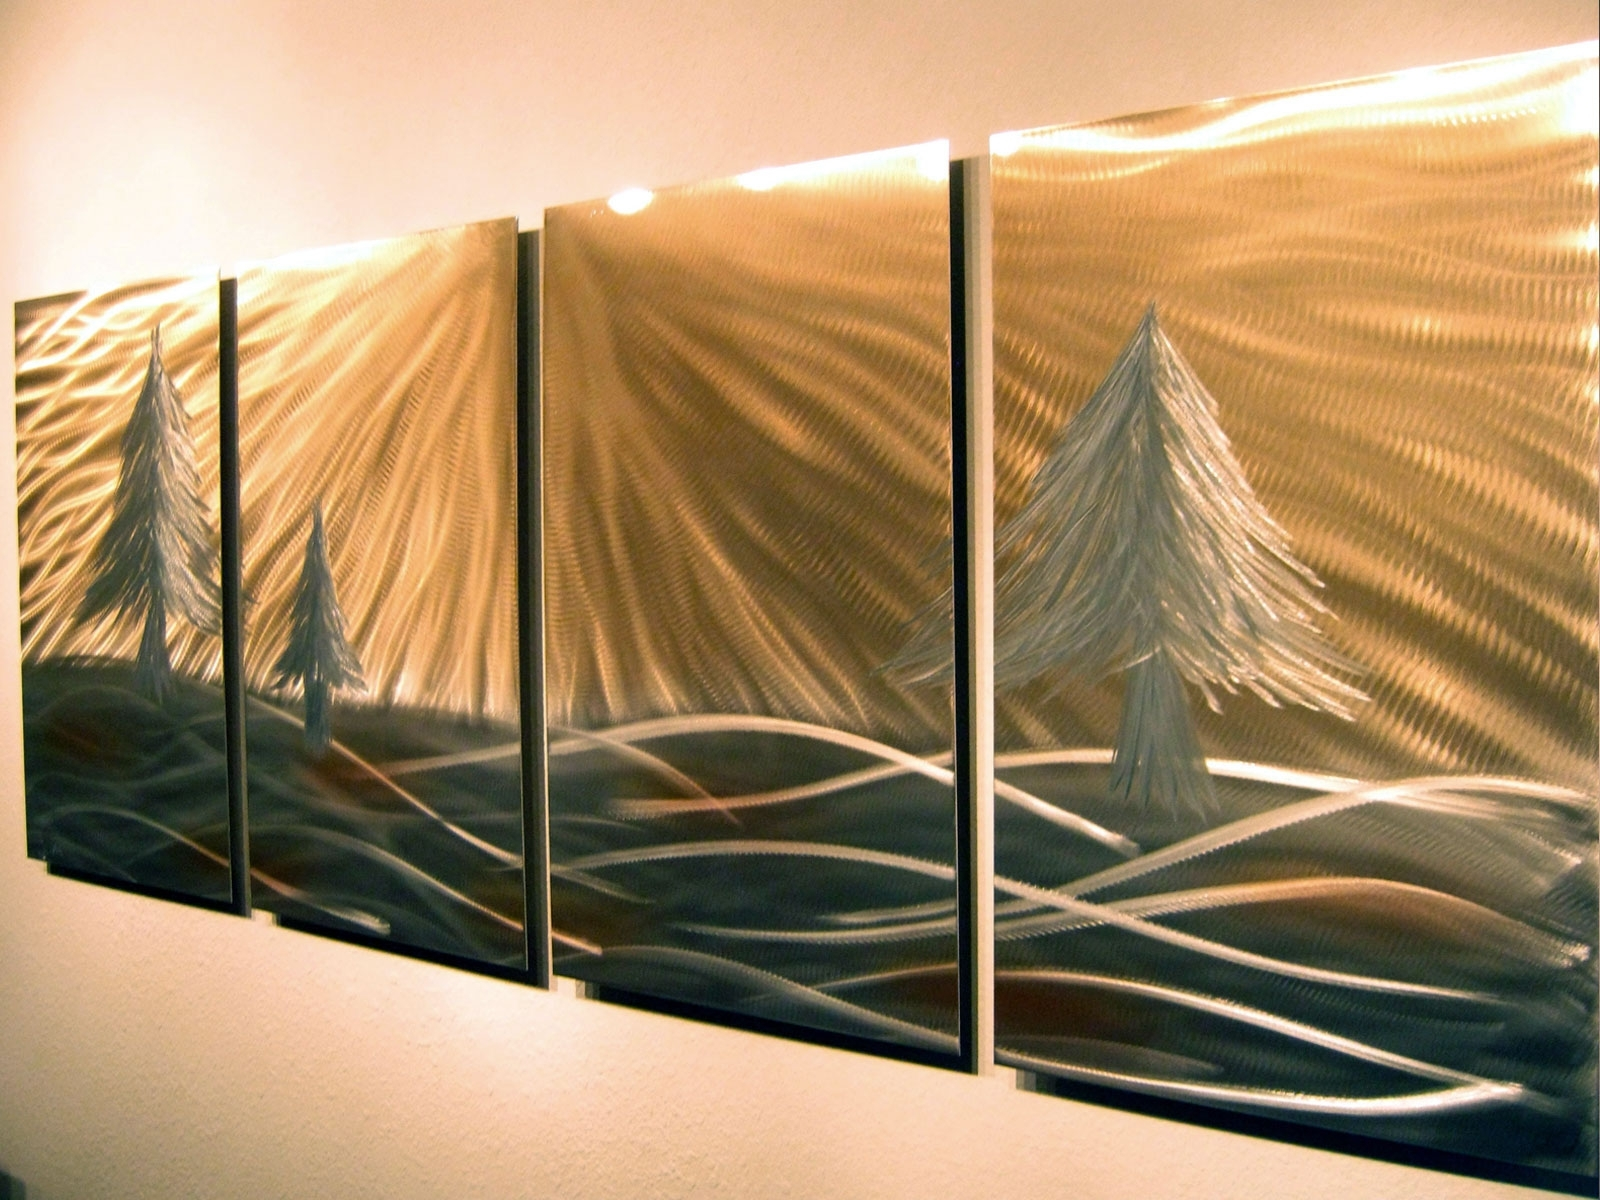 Most Current Metal Pine Tree Wall Art Inside 3 Pine Trees – Abstract Metal Wall Art Contemporary Modern Decor (View 12 of 15)